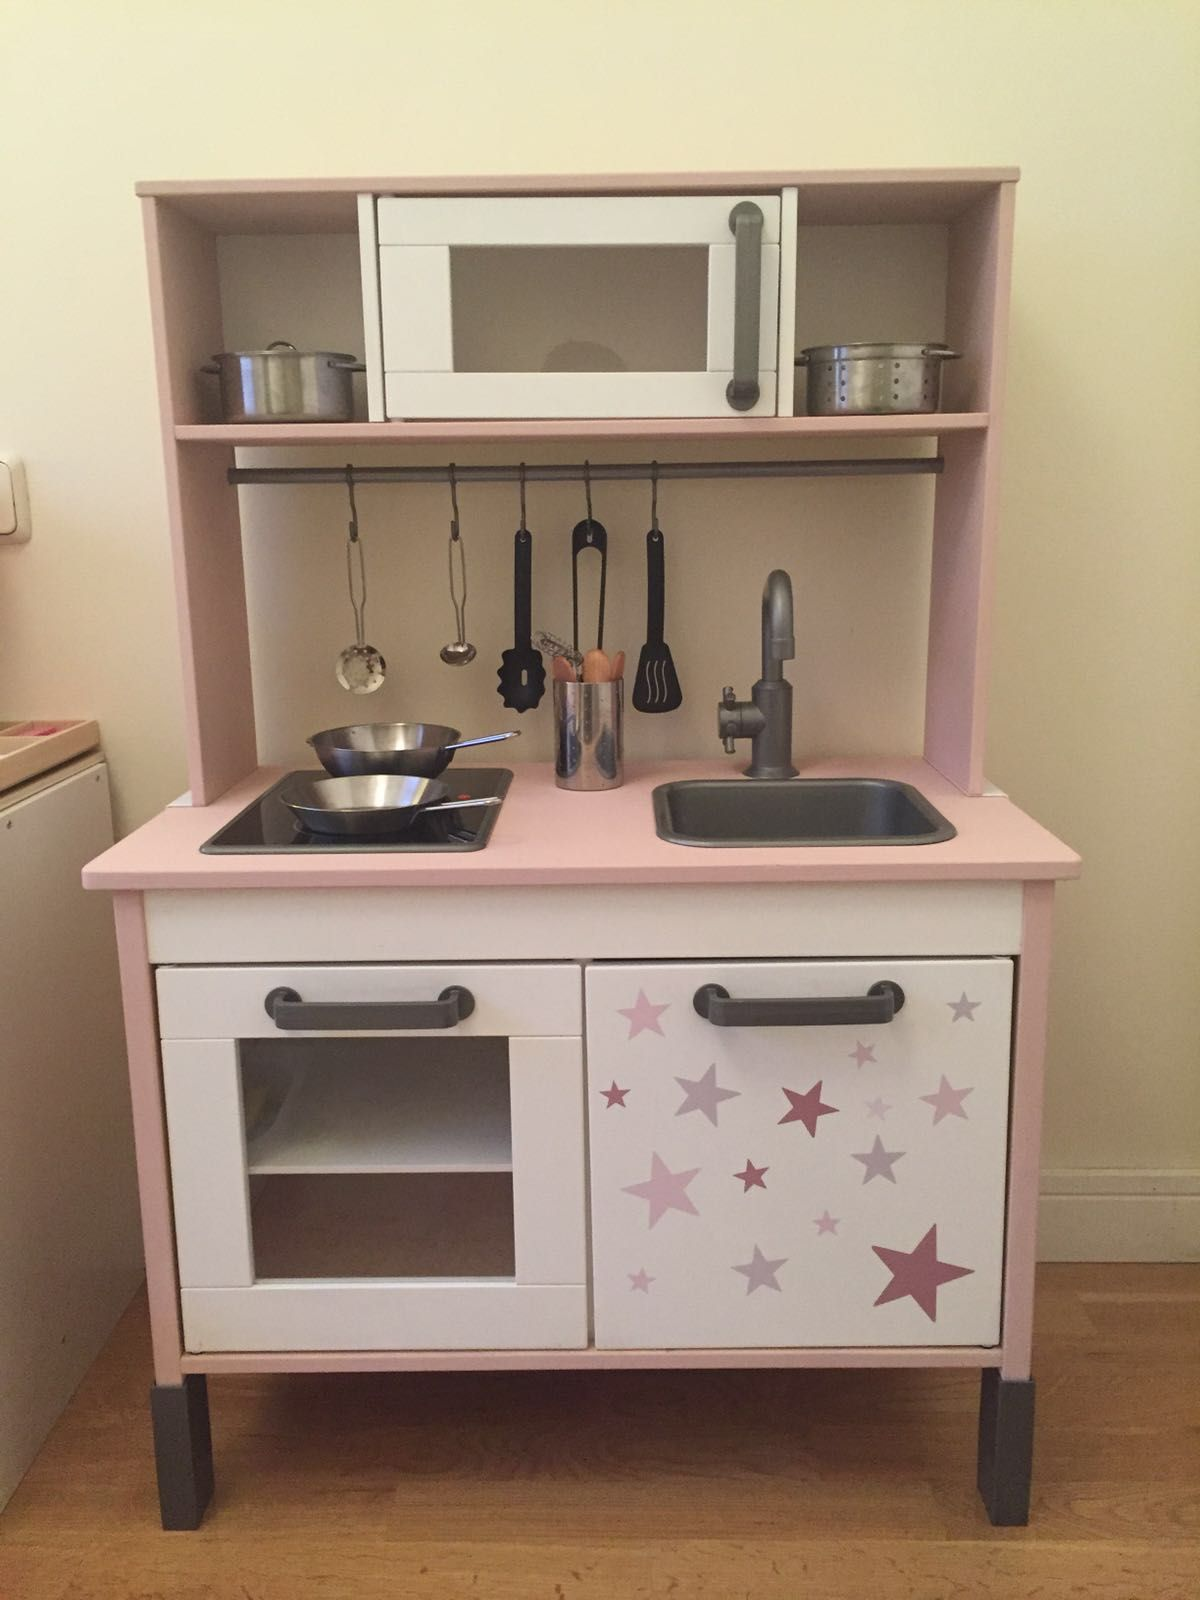 Ikea Küche Duktig Cocinita De Ikea Tuneada Kitchen Kids Duktig Kitchen Hacks